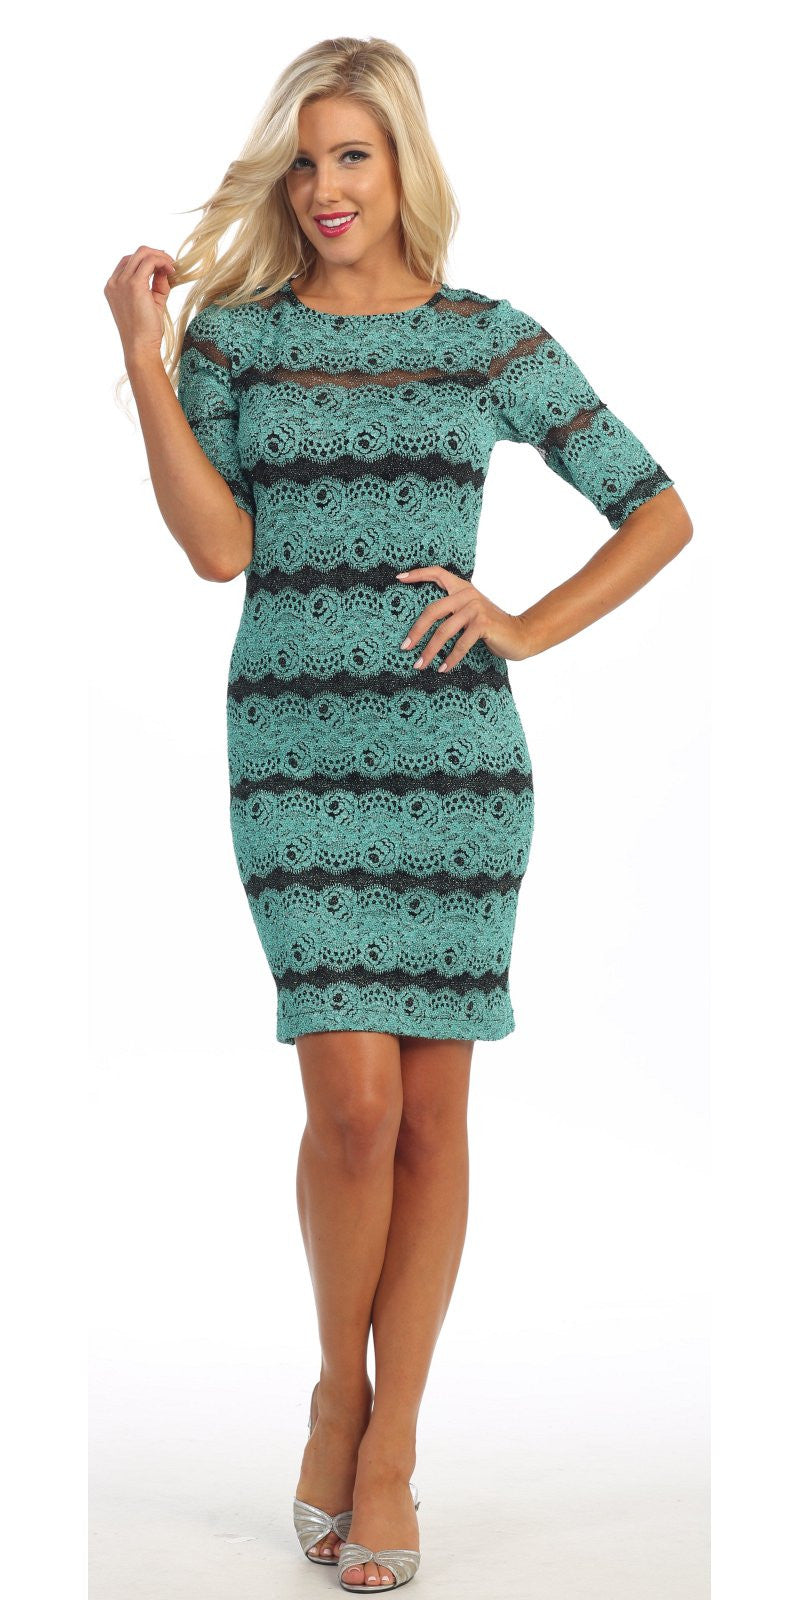 Body Con Aqua Glitter Lace Dress Mid Length Sleeves Short